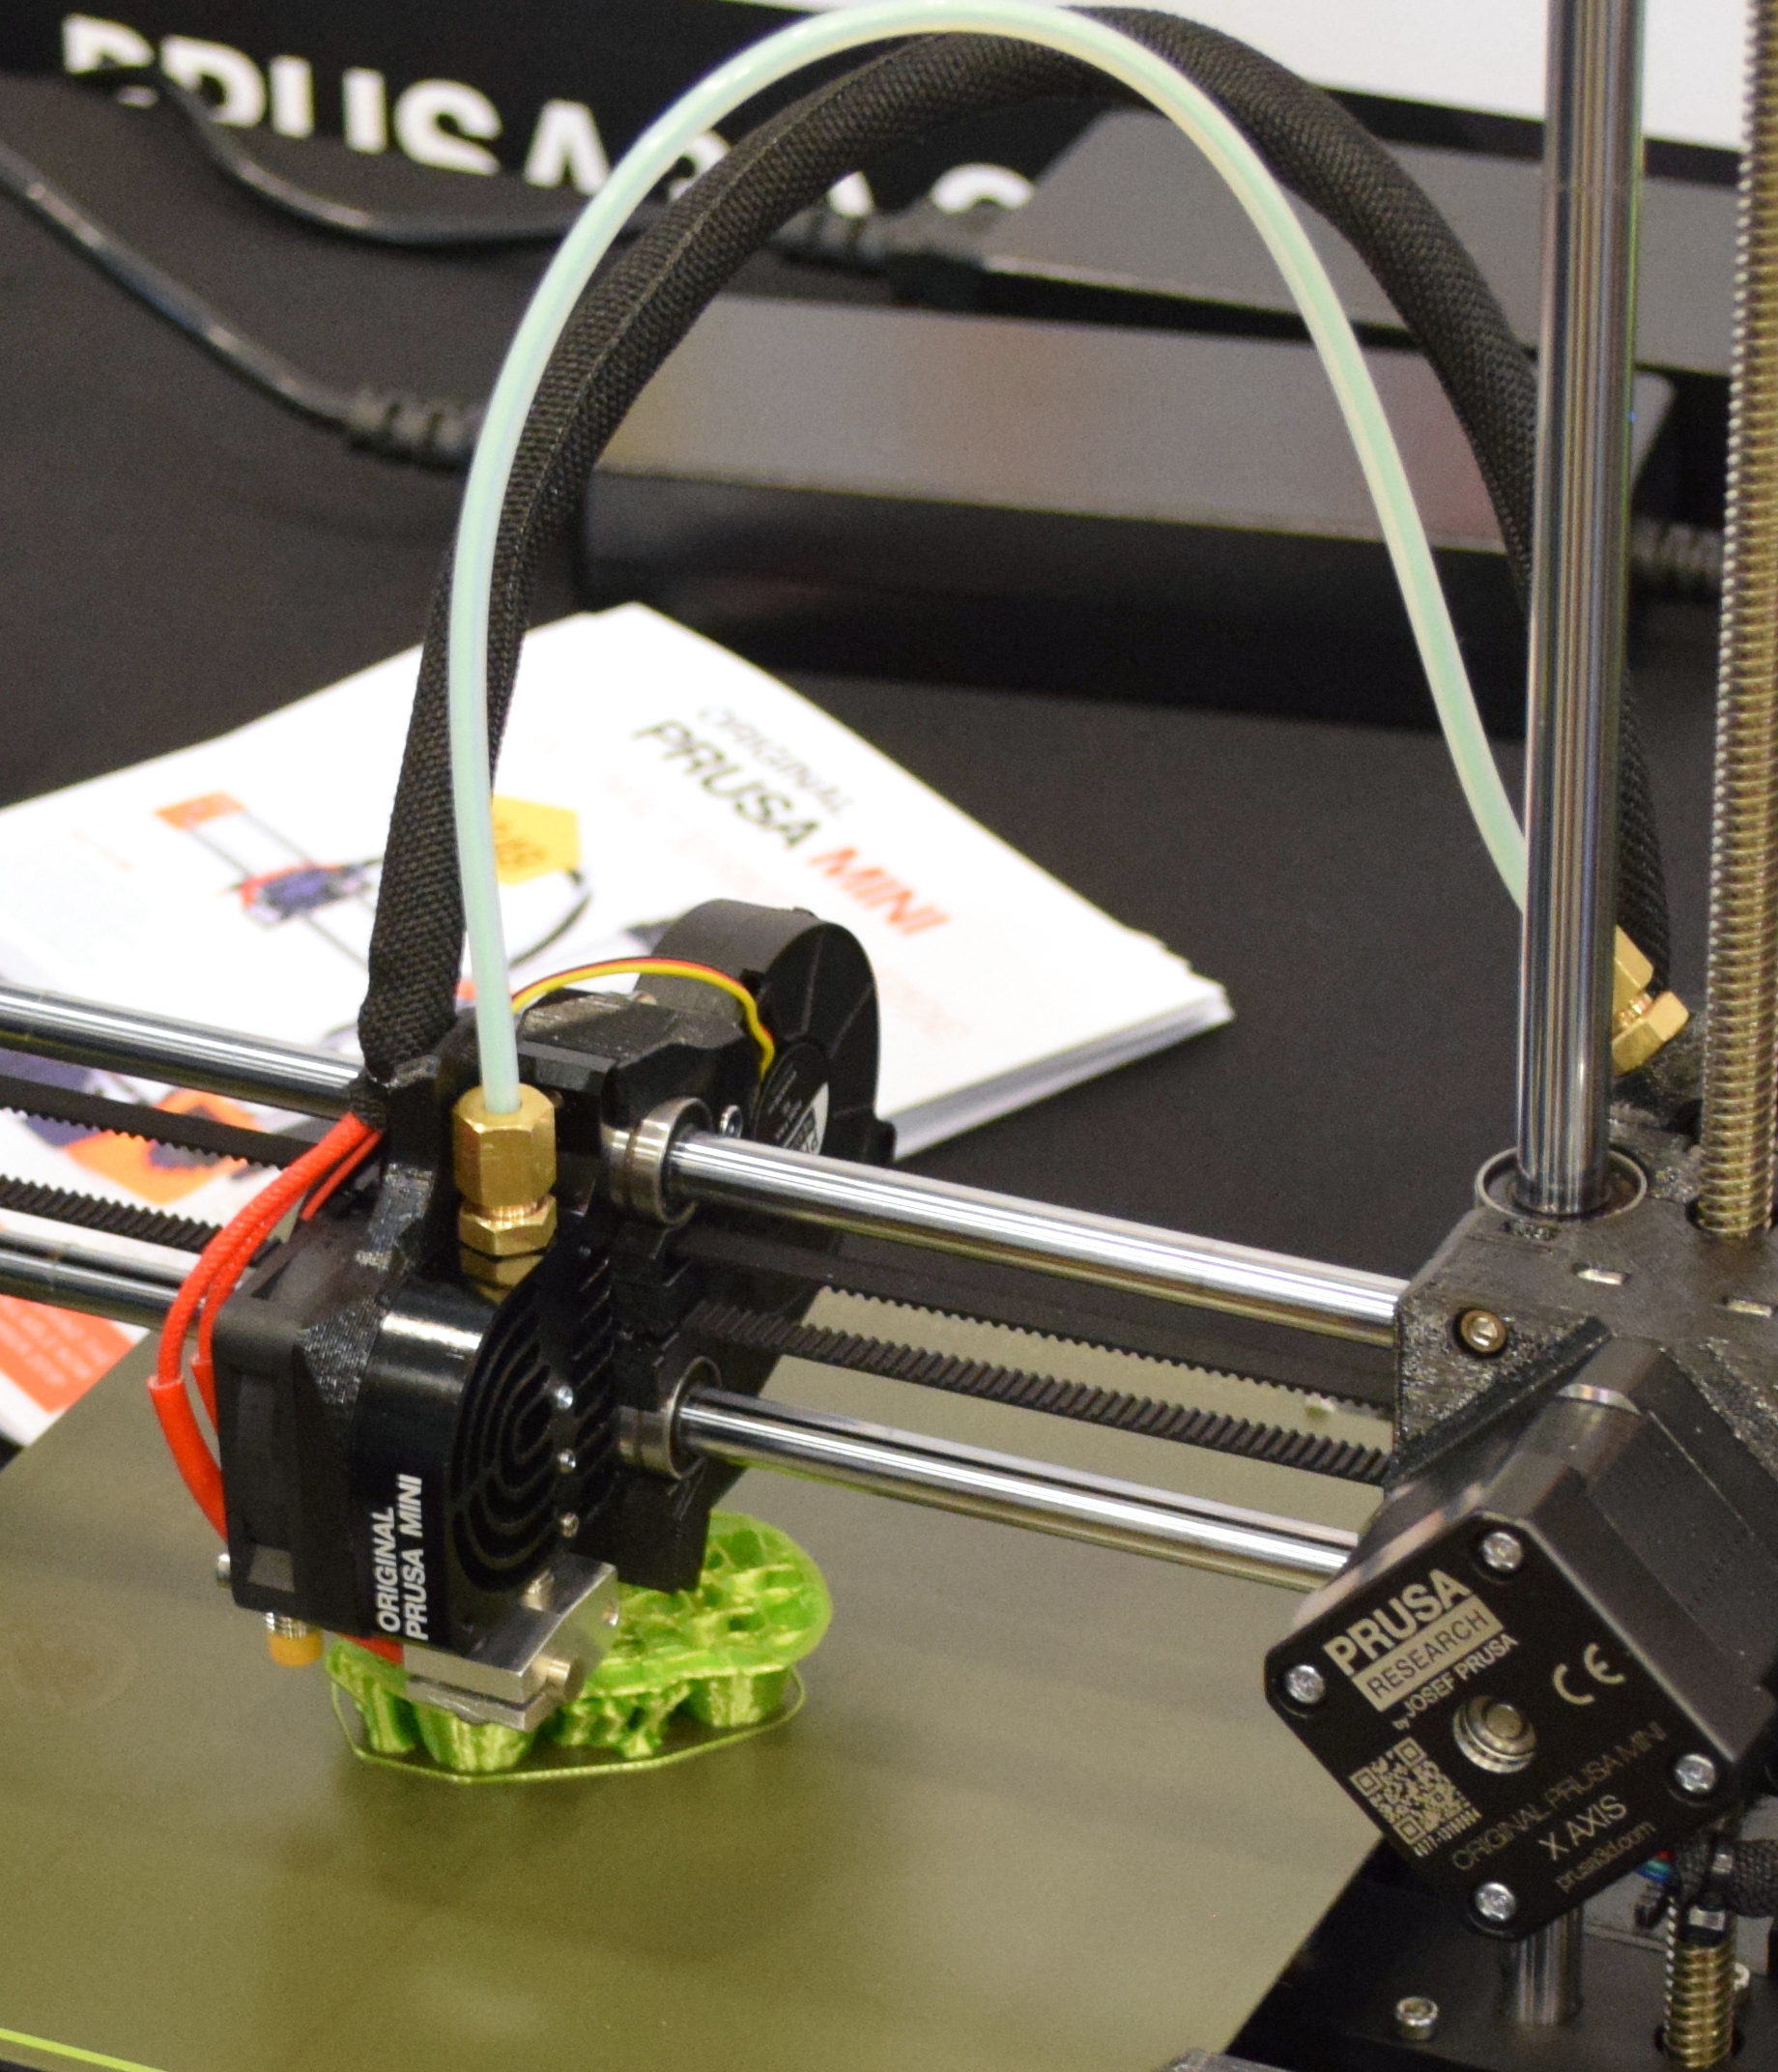 Prusa Unveils New Mini 3D Printer, Shakes Up The Competition